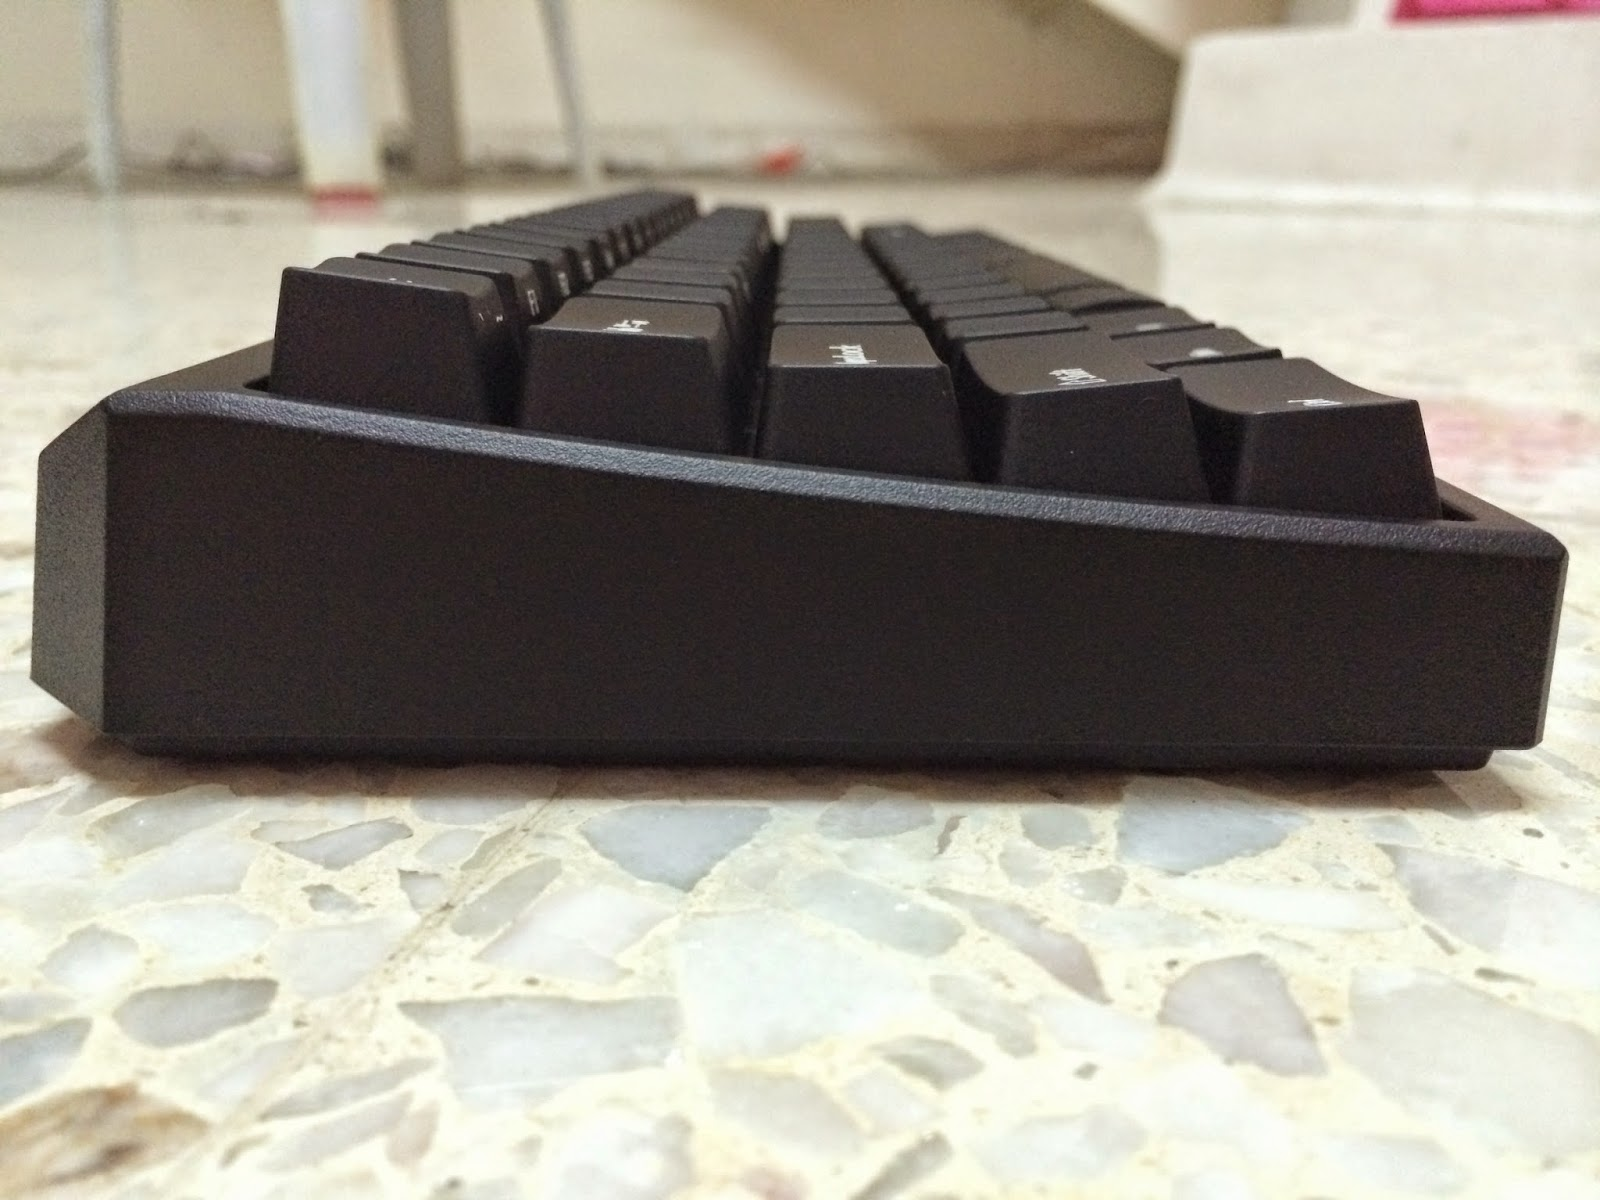 Unboxing & Review: Filco Majestouch Minila Air 45